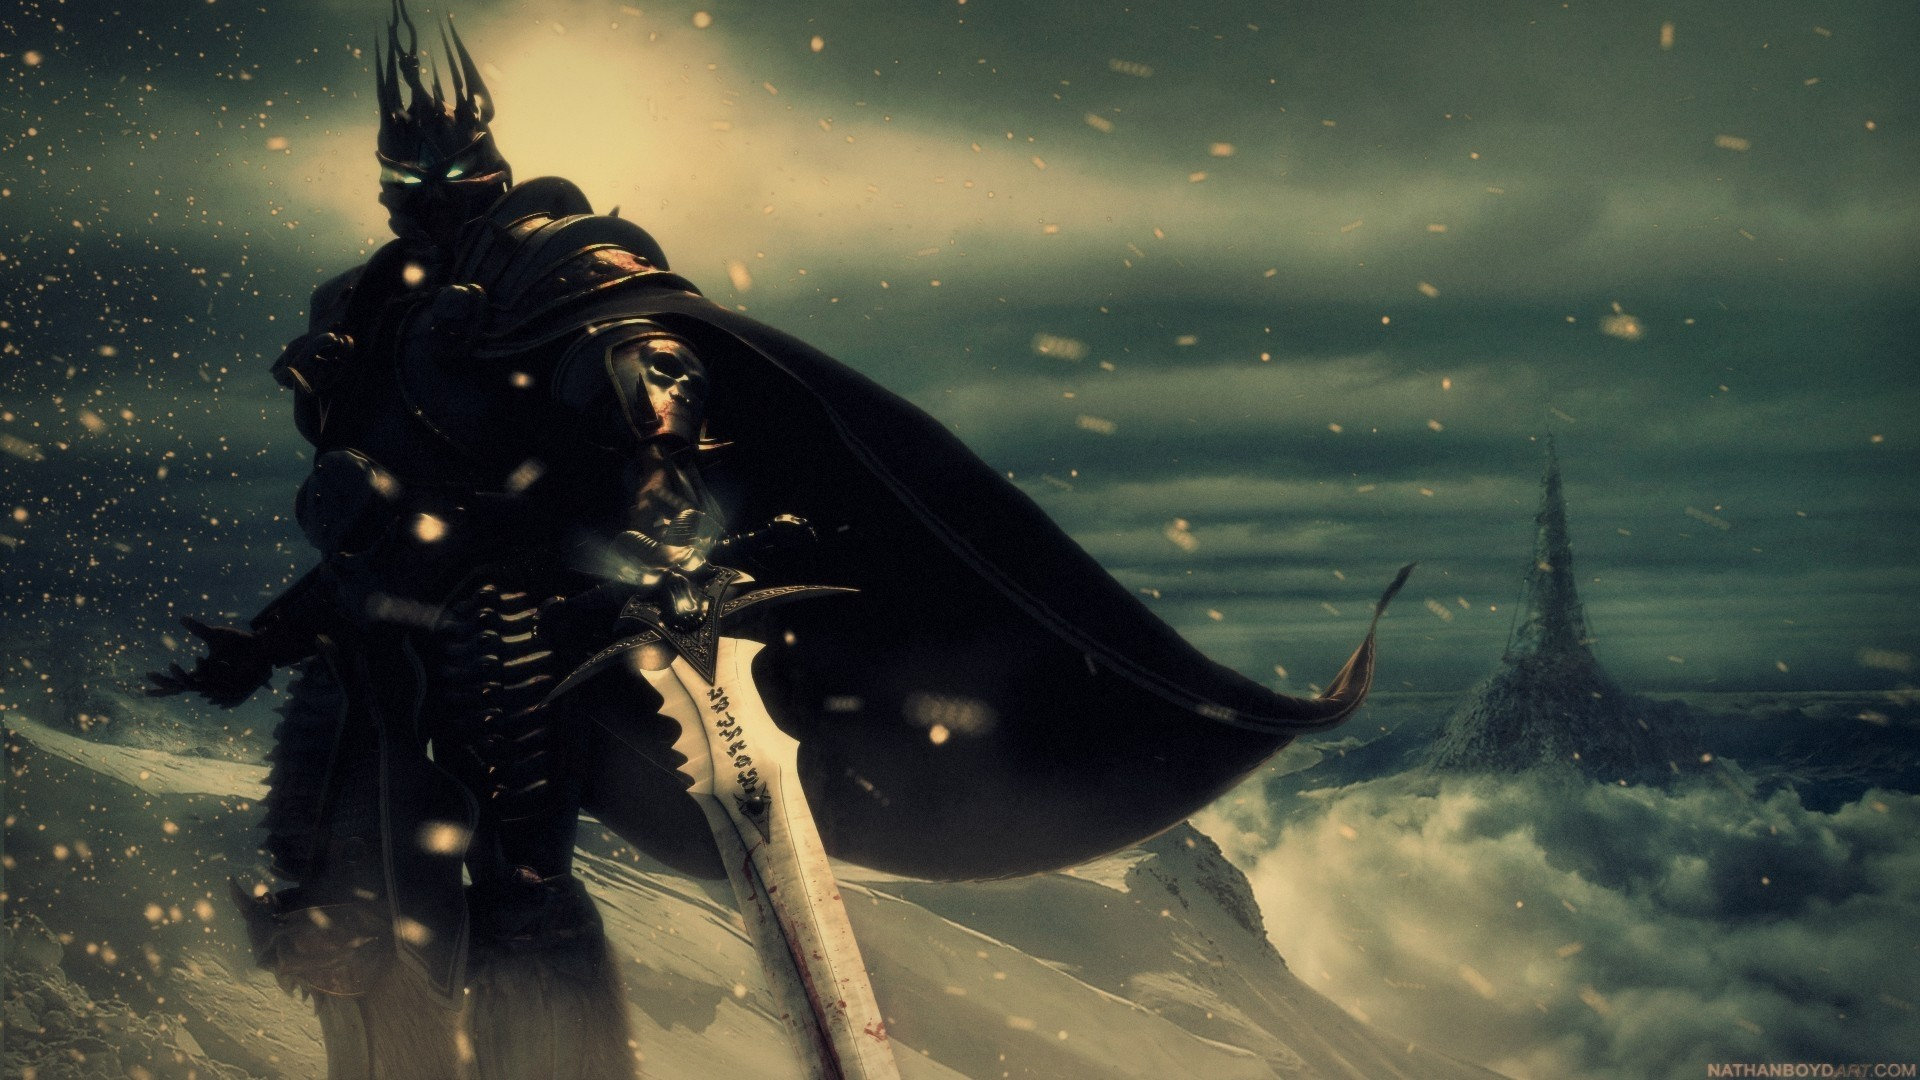 1920x1080 Wallpaper world of warcraft, lich king sword, cold, snow, eyes 1920x1080